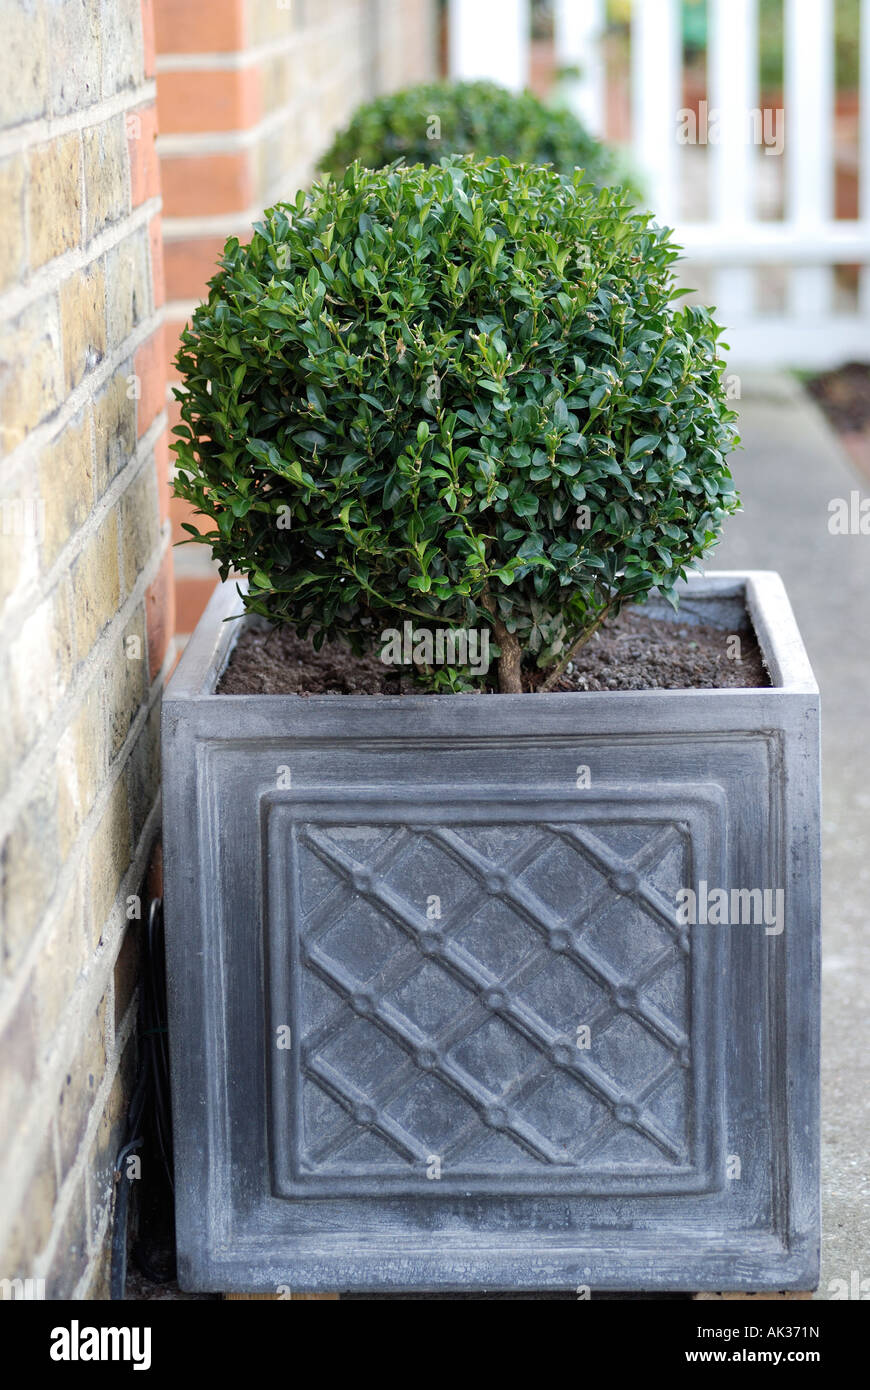 BUXUS PLANT IN GREY PLANTERS OUTSIDE FRONT DOOR OF HOUSE